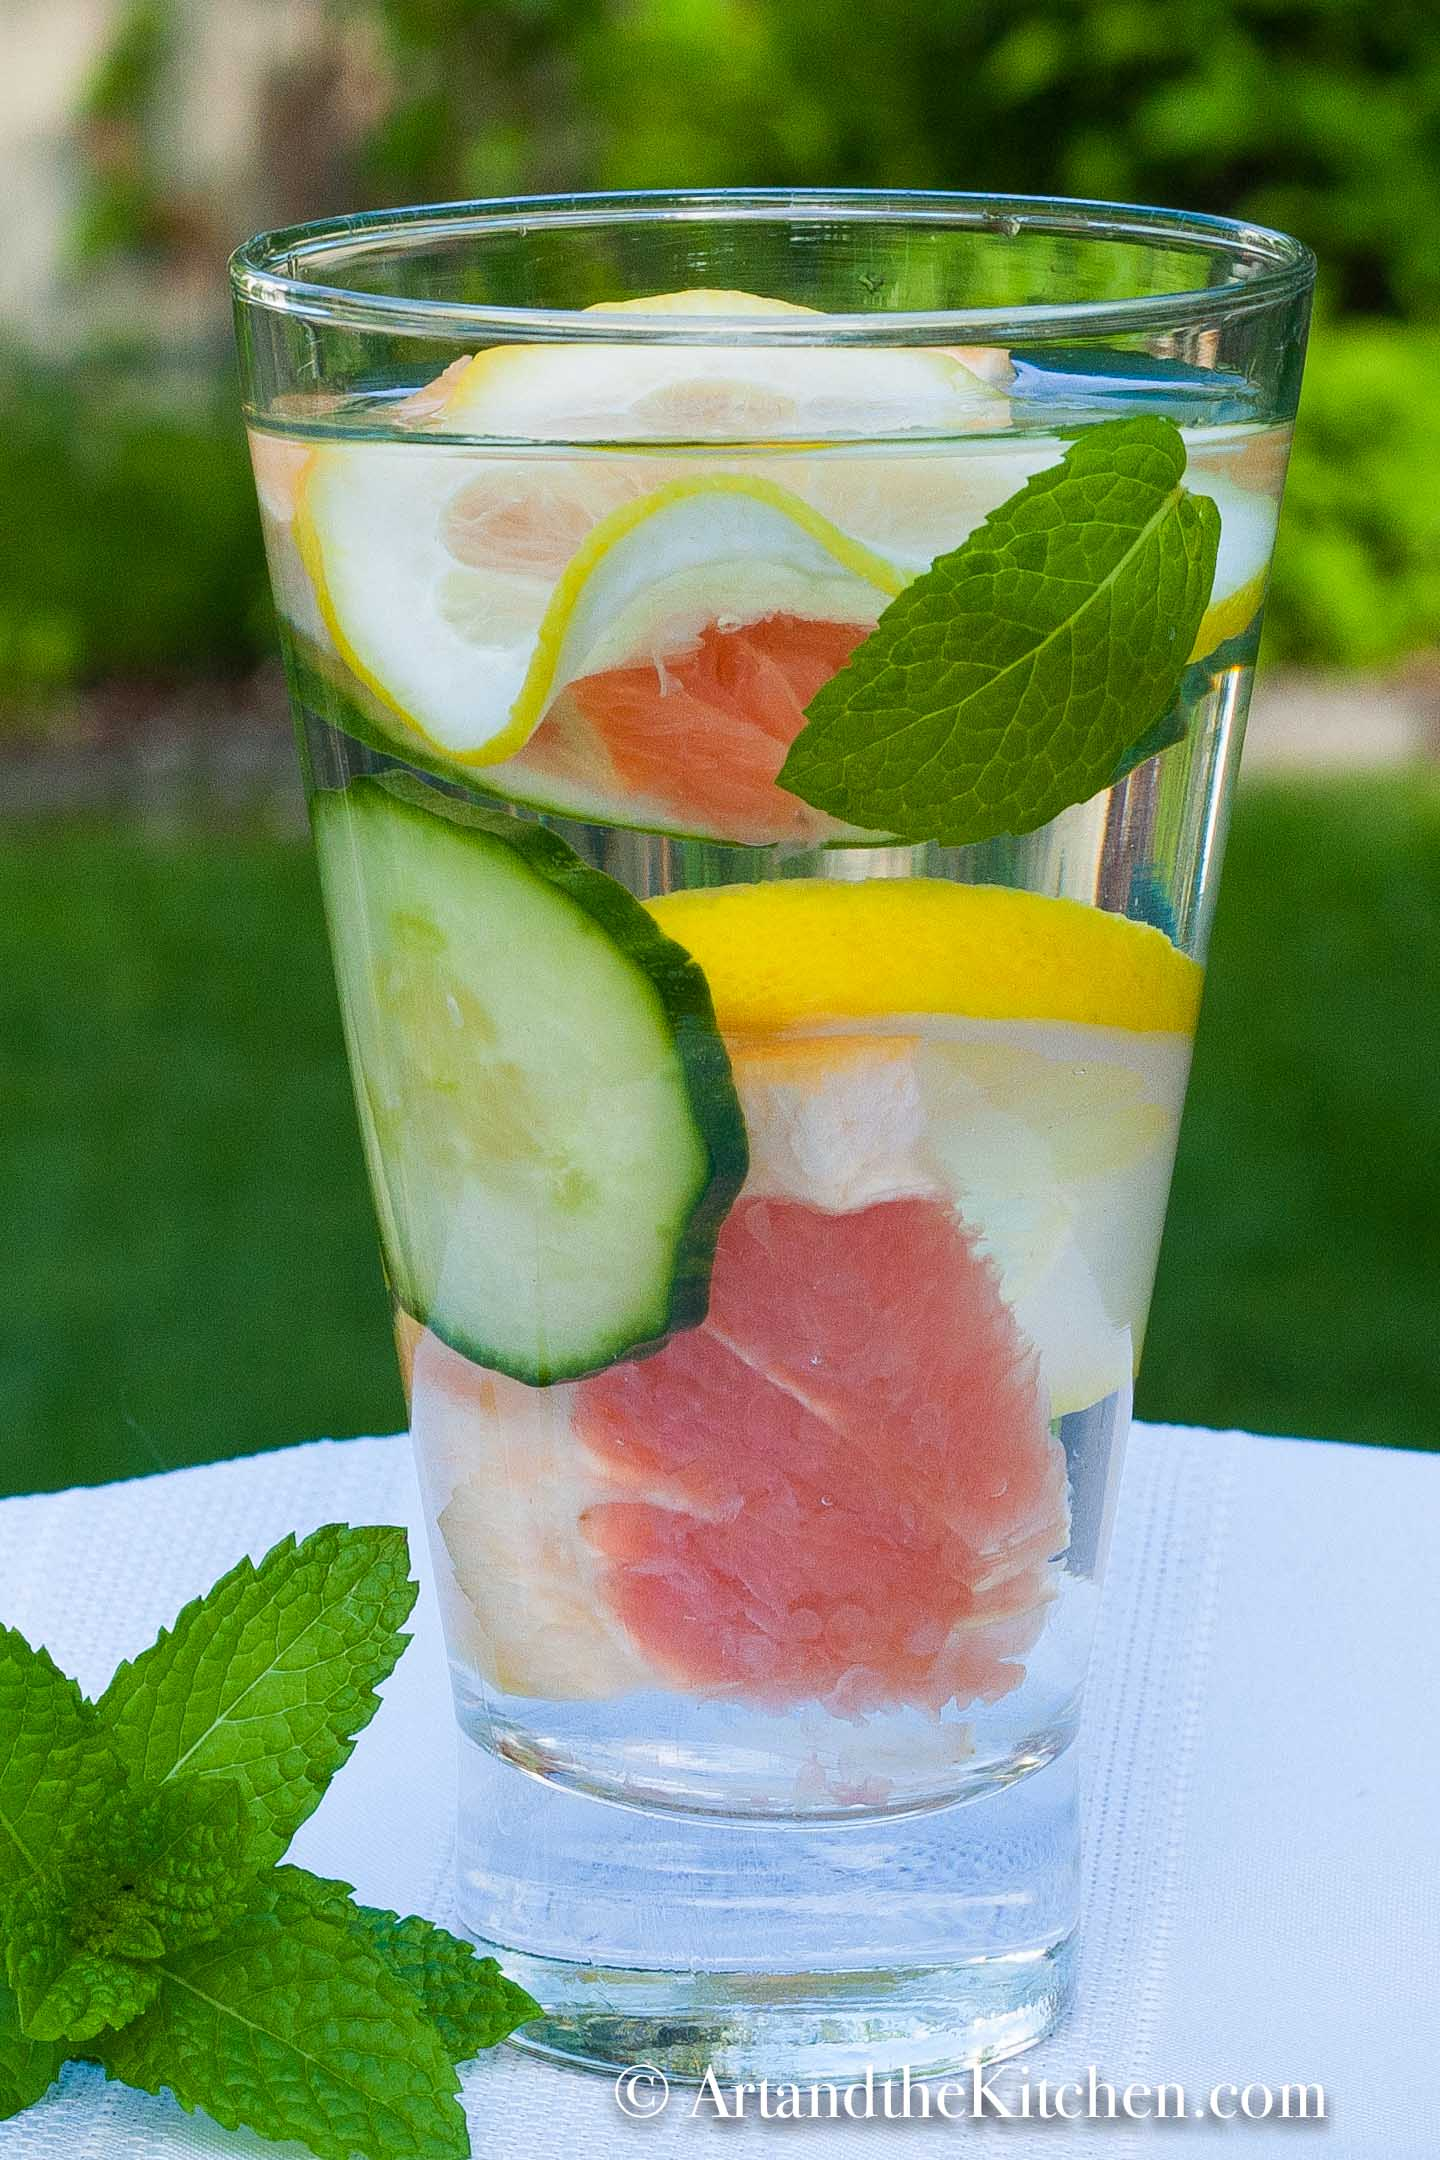 A tasty flavored water recipes that is detoxing and delicious! via @artandthekitch